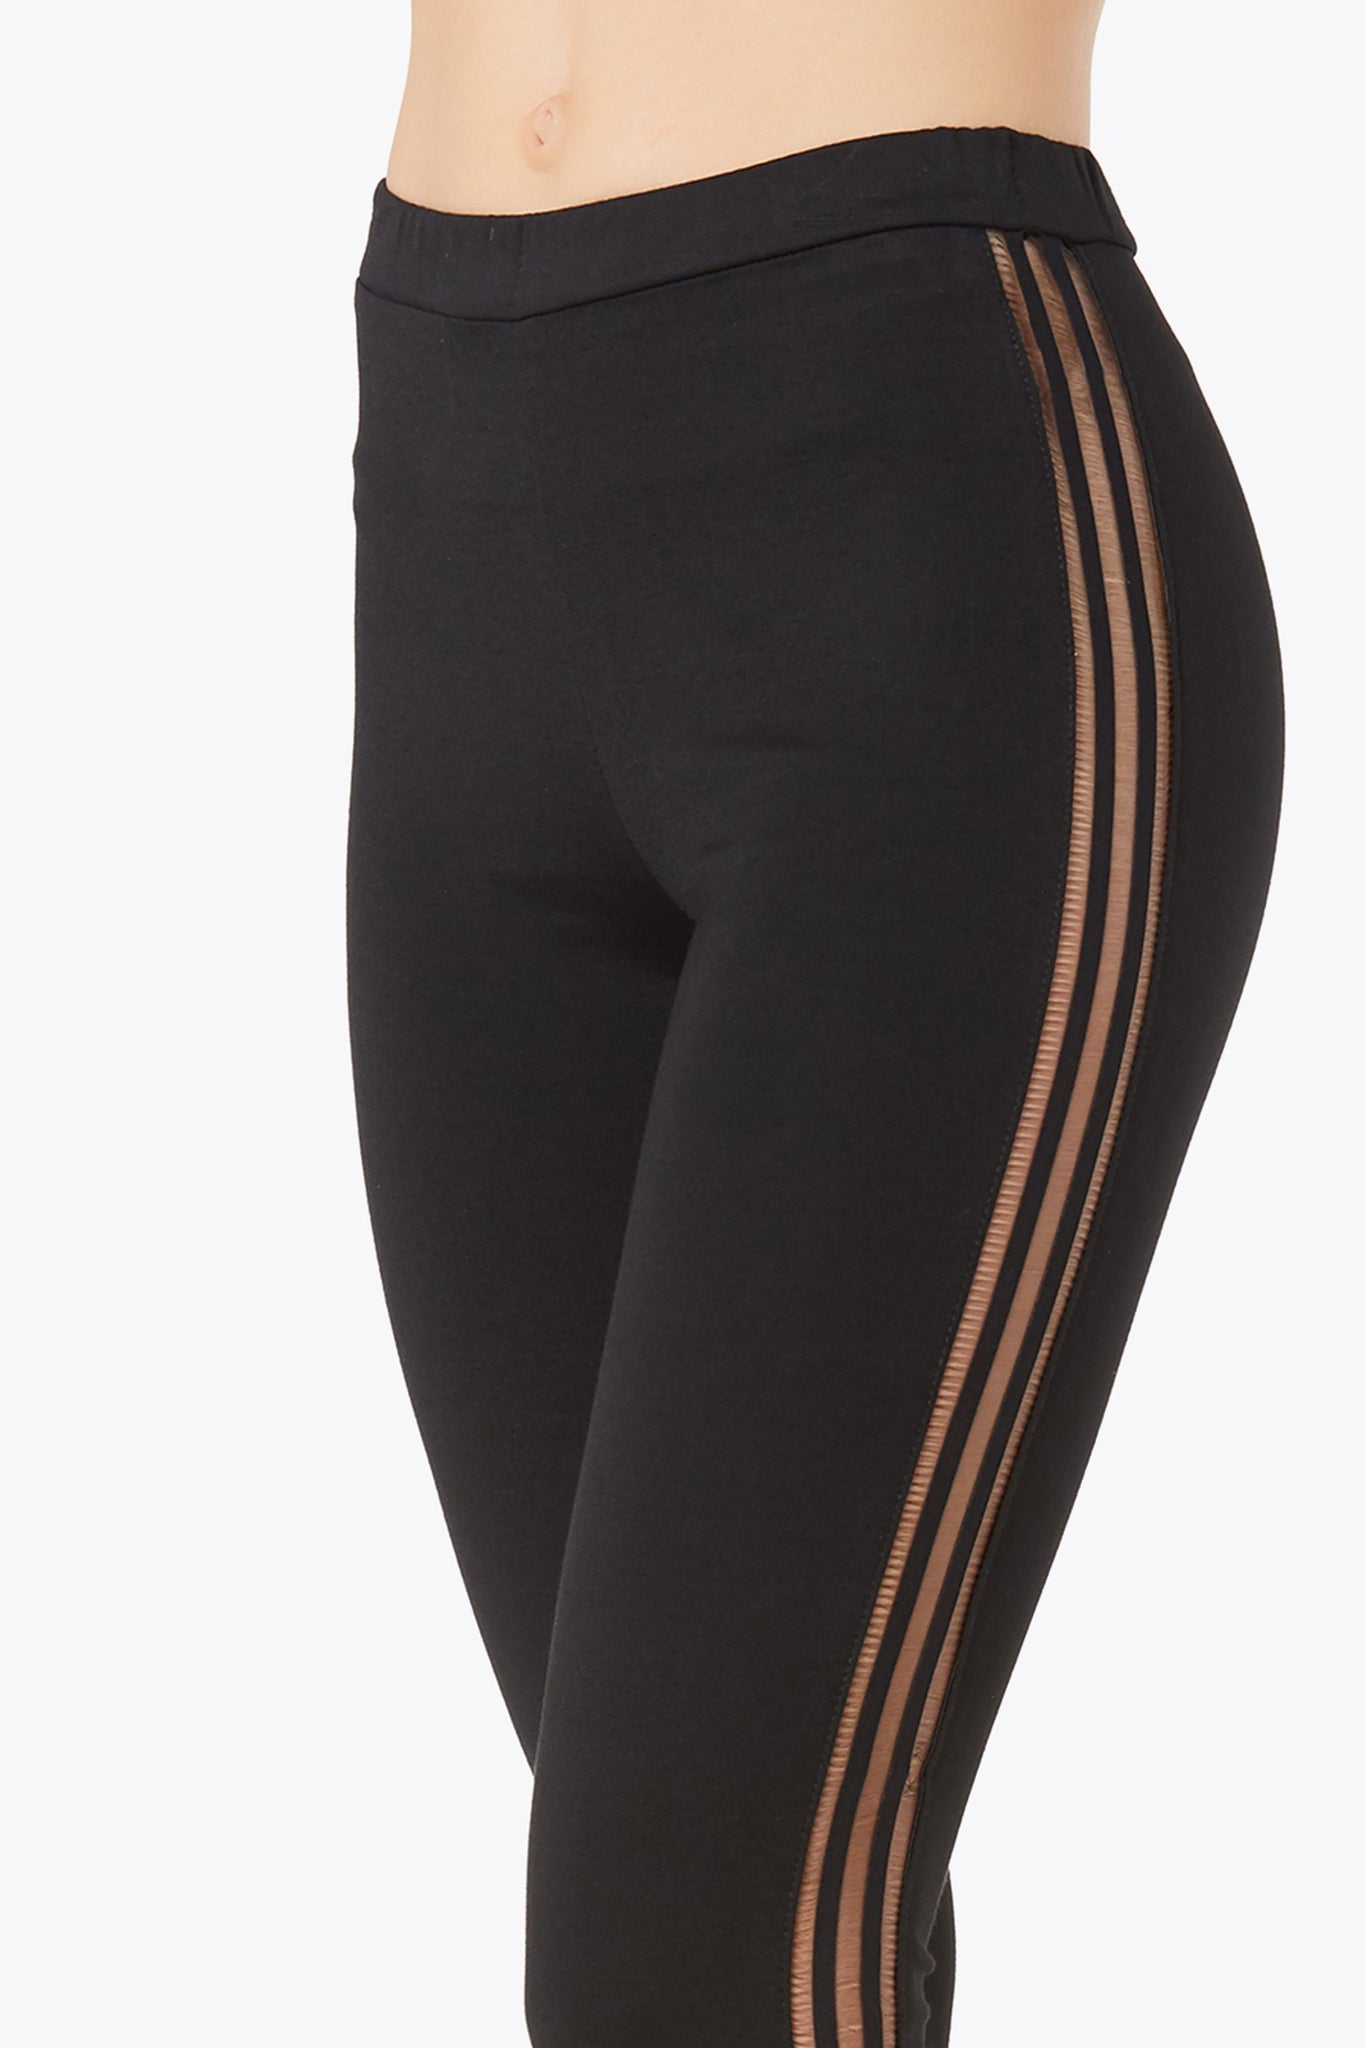 High rise pants with flattering slim fit. Trendy contrast mesh-like panel down each side and zipper detailing at hem.